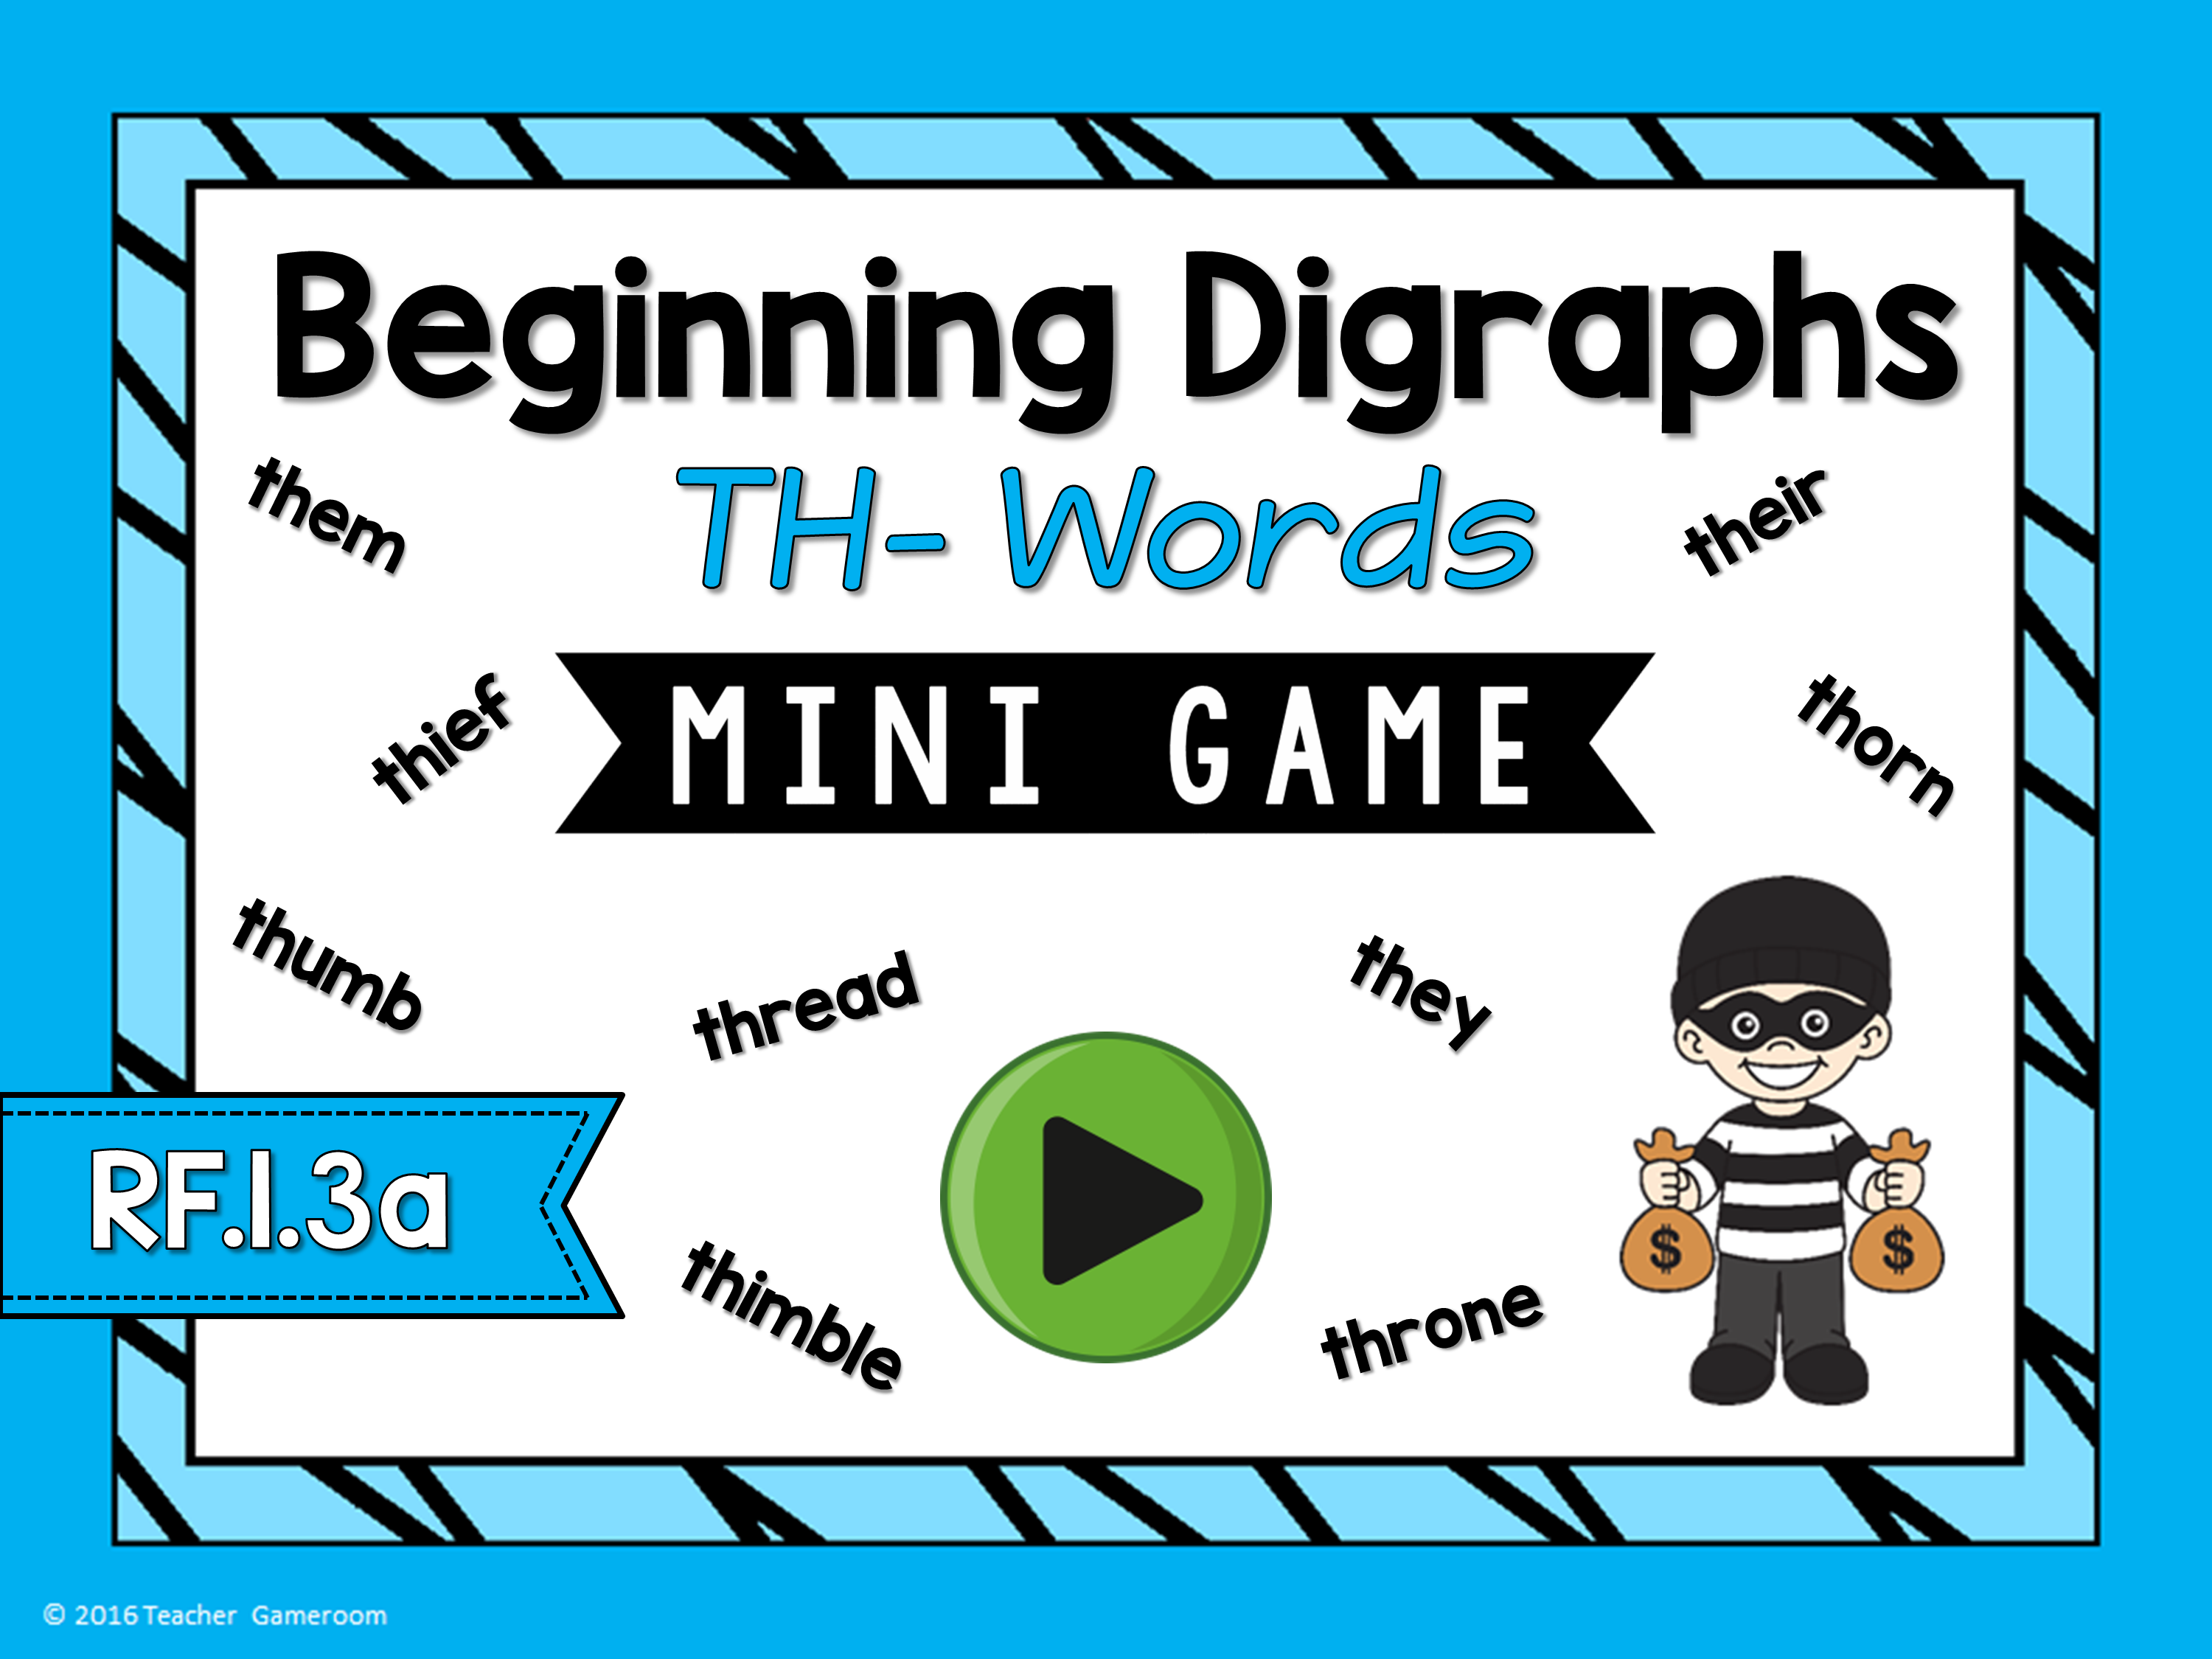 Beginning Digraphs Th- Words Mini Game